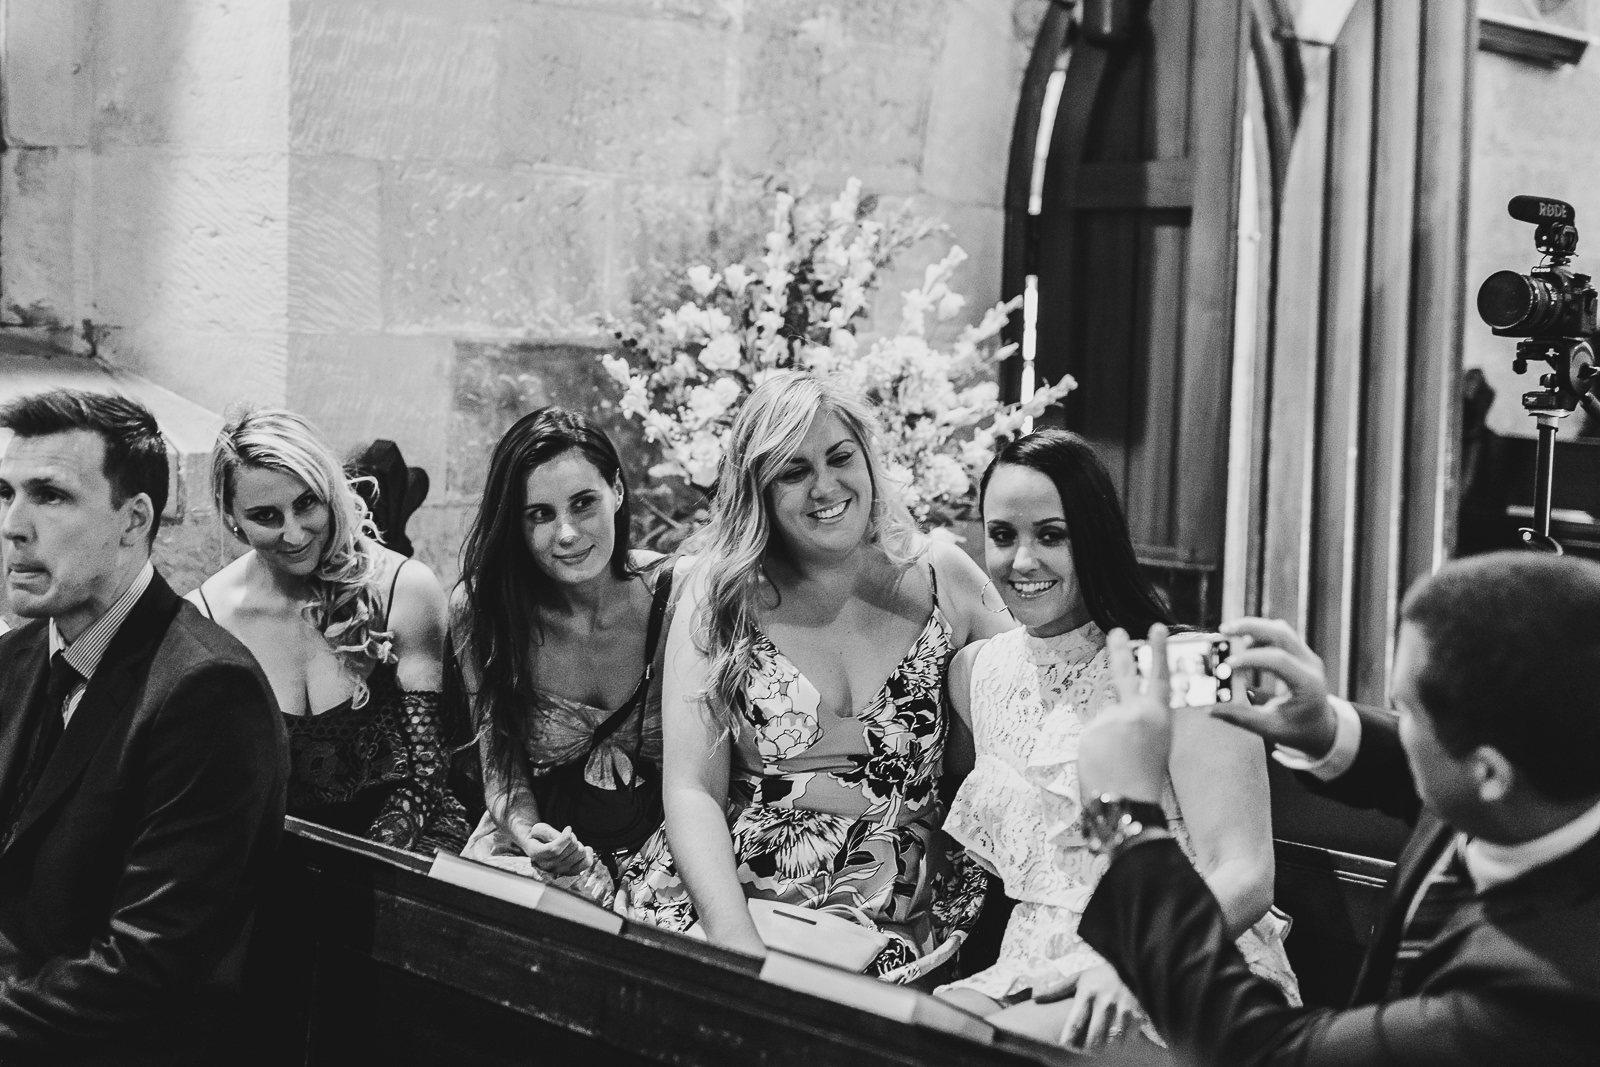 20171007 - Audley+Dance+Hall+Carlie+Simon_108.jpg